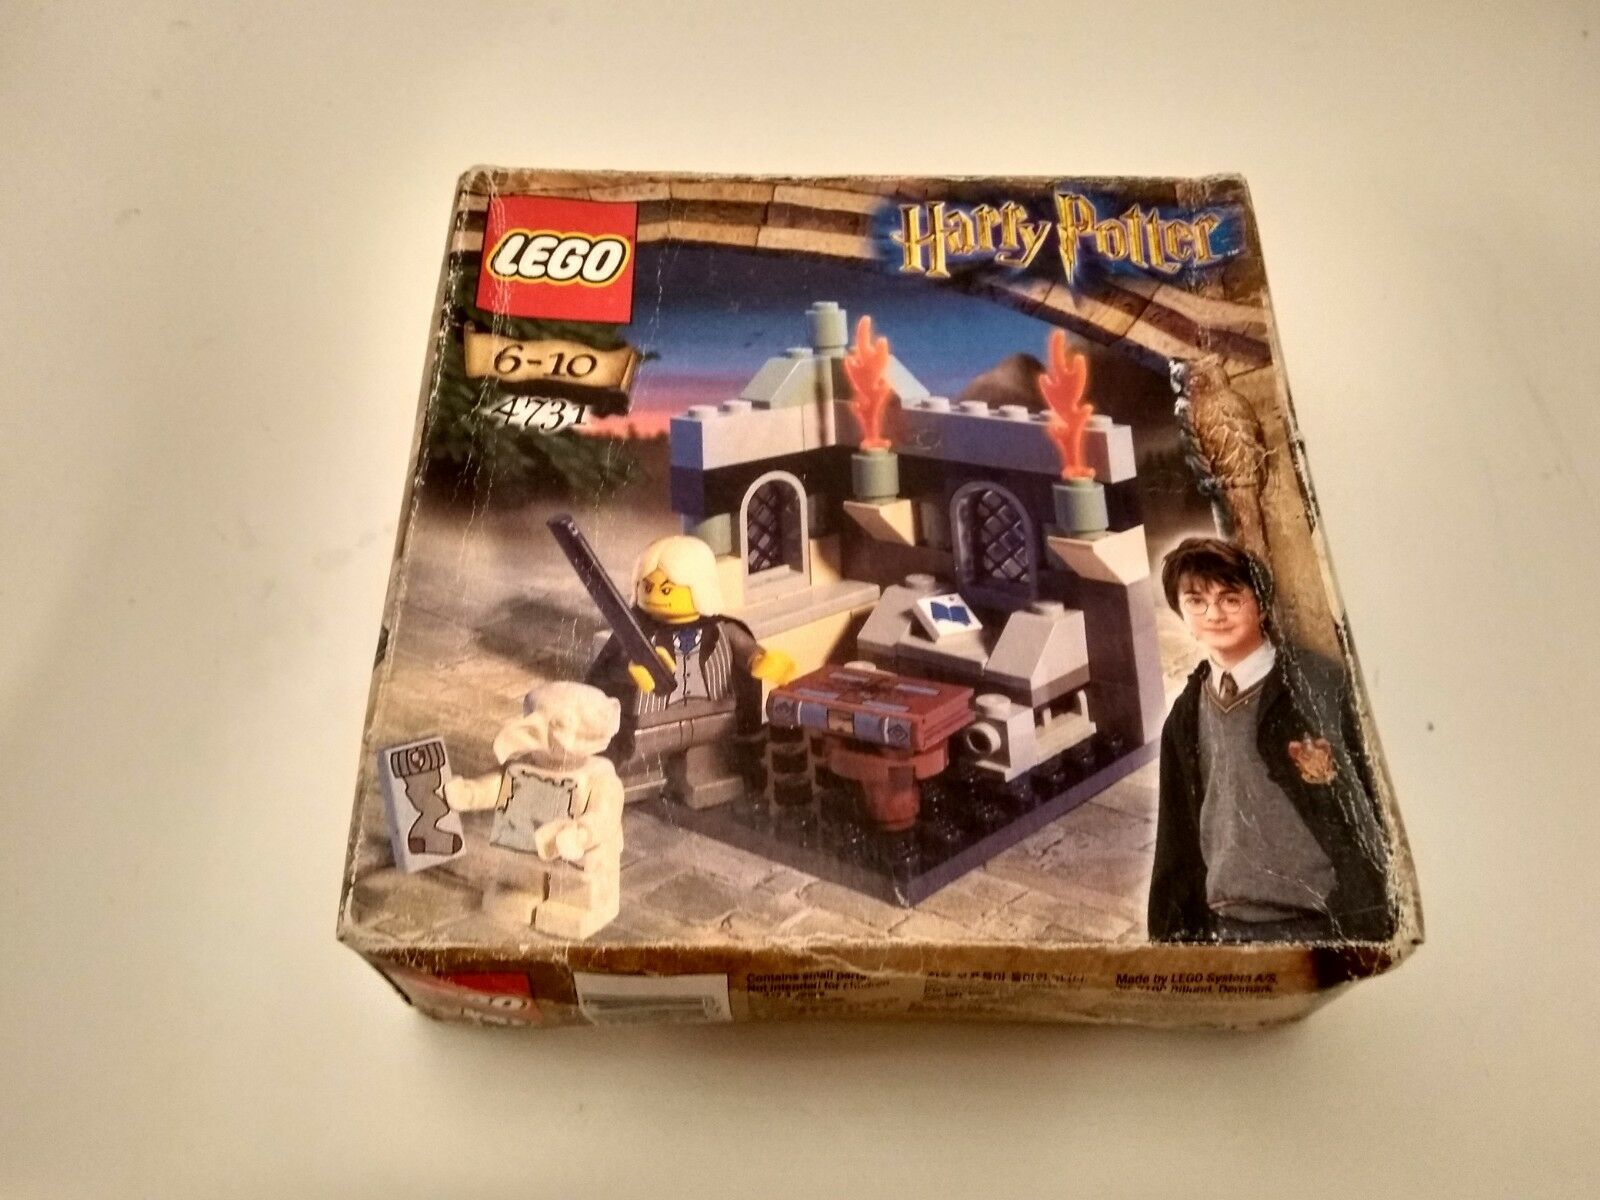 NEW LEGO Harry Potter Dobby's Release 4731 - - - Made in DENMARK 2002 2a9638